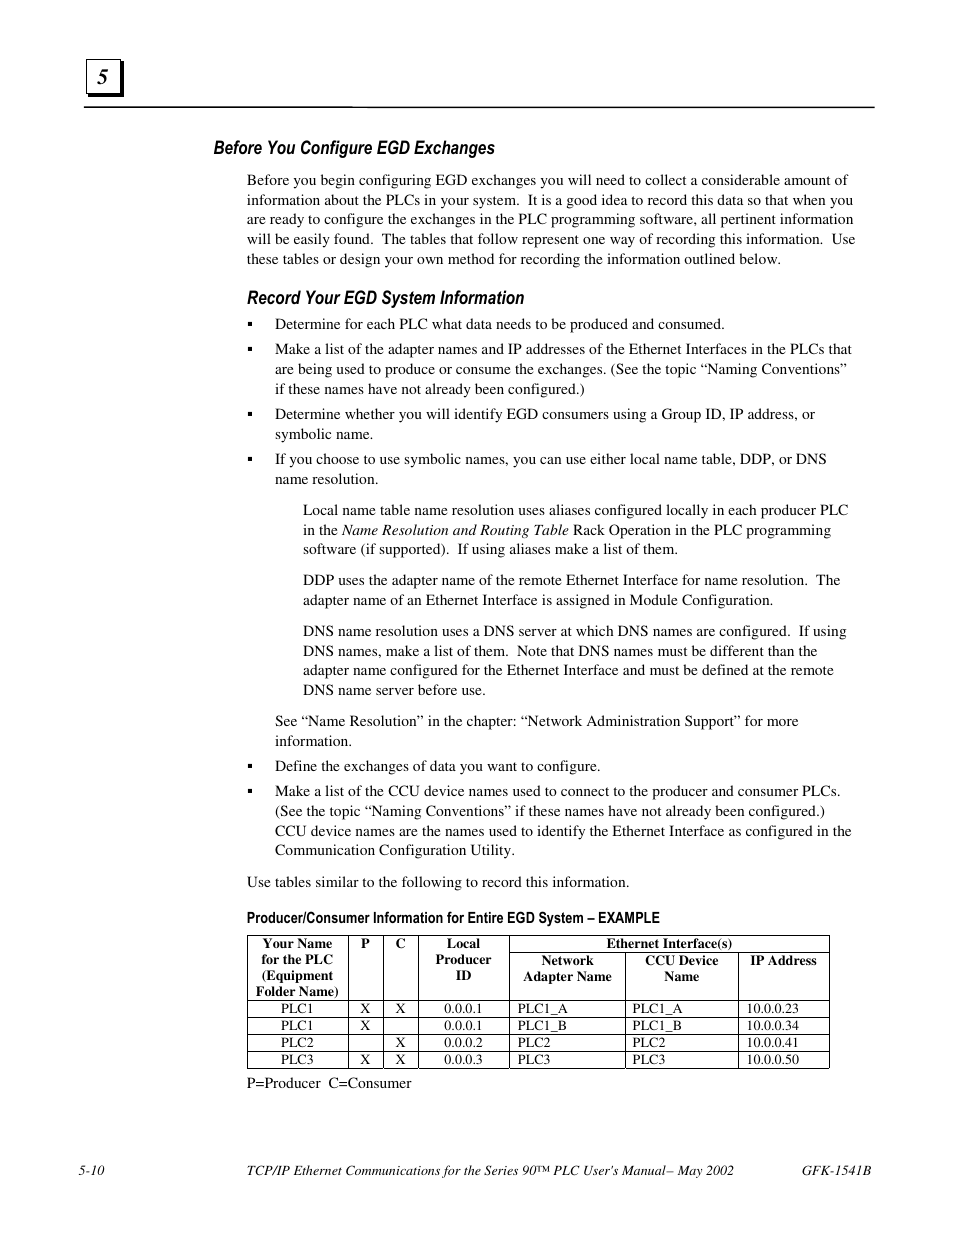 Before you configure egd exchanges, Record your egd system information | FANUC  Robotics America GFK-1541B User Manual | Page 159 / 240